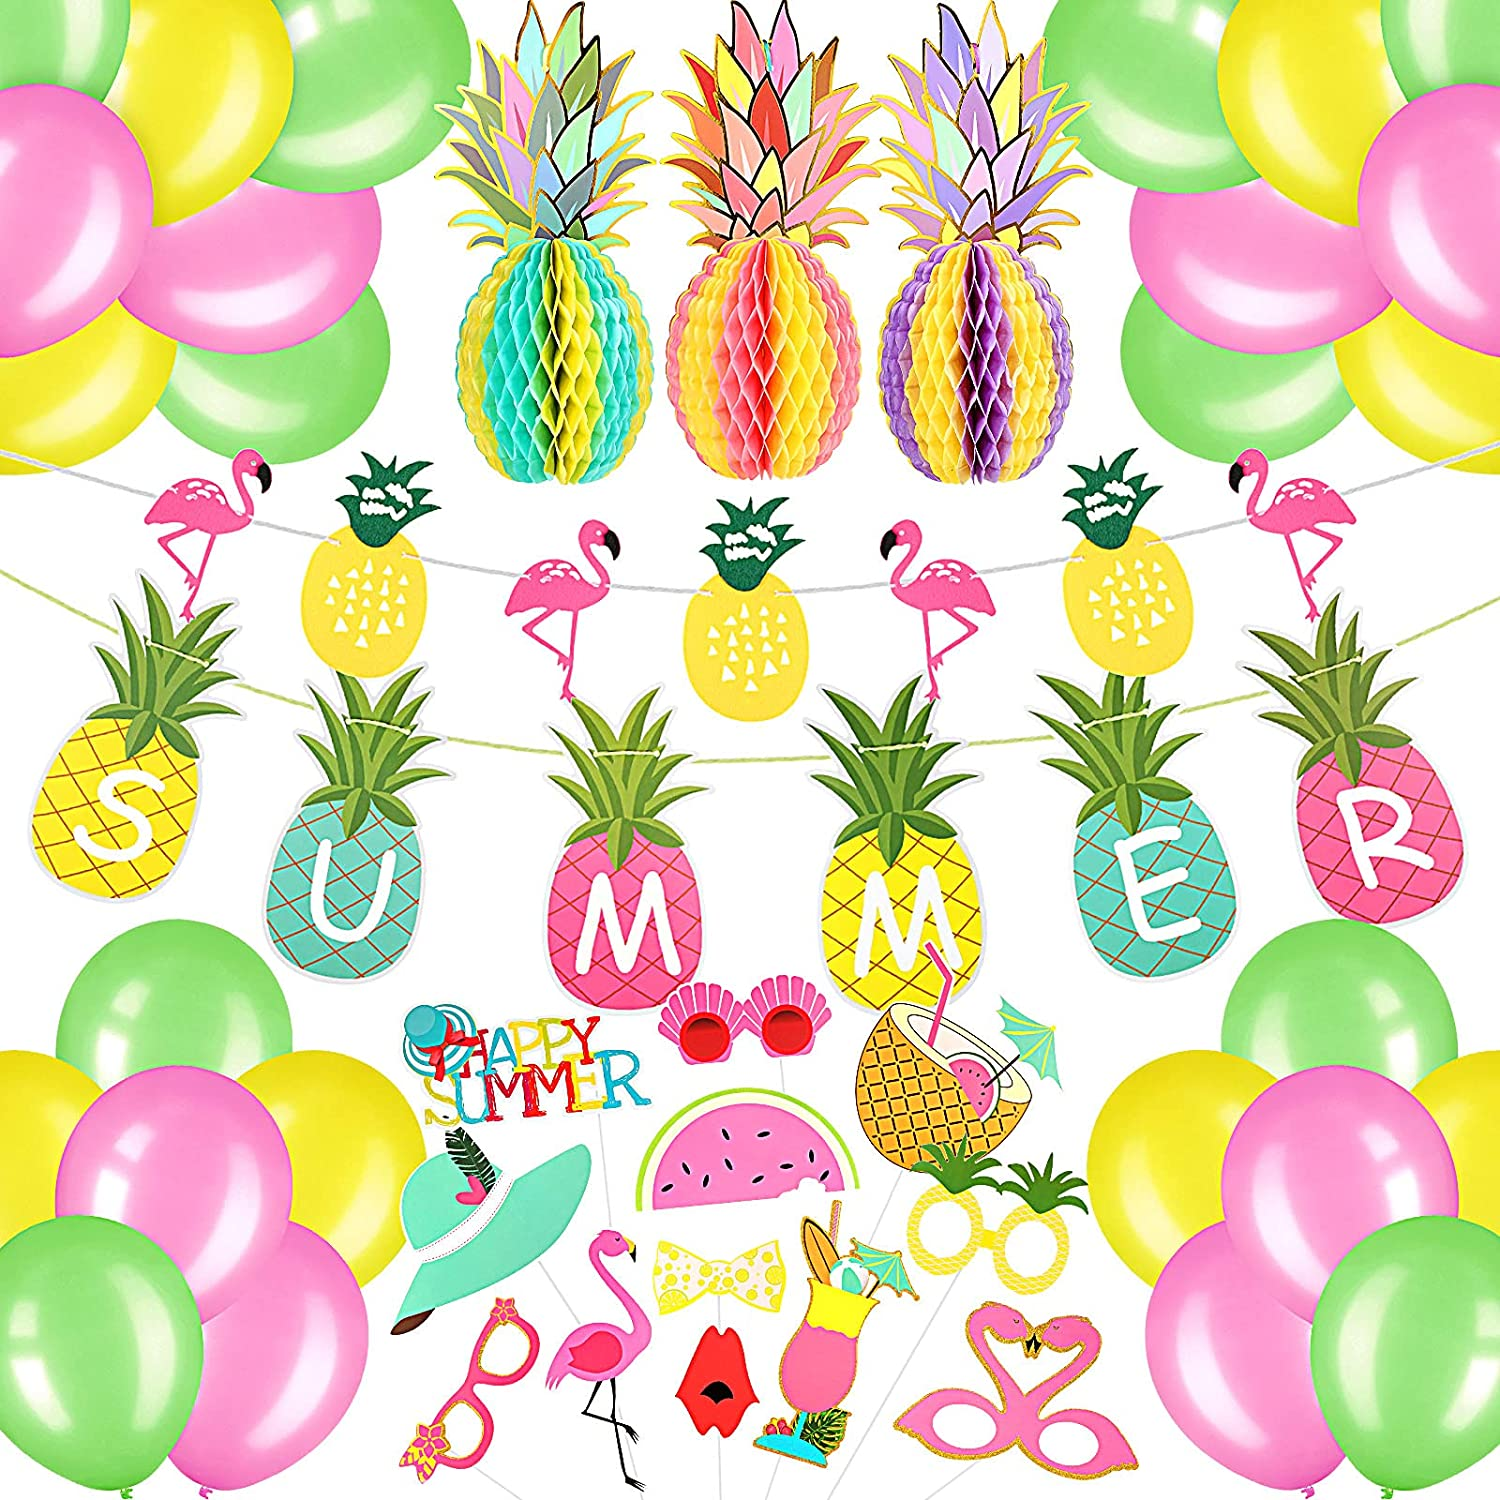 46 Pieces Summer Party Decoration Hawaiian Party Decoration Set Pineapple Flamingo Banner Flamingo Summer Photo Booth Props Colorful Party Balloons for Hawaiian Luau Beach Birthday Wedding Decor